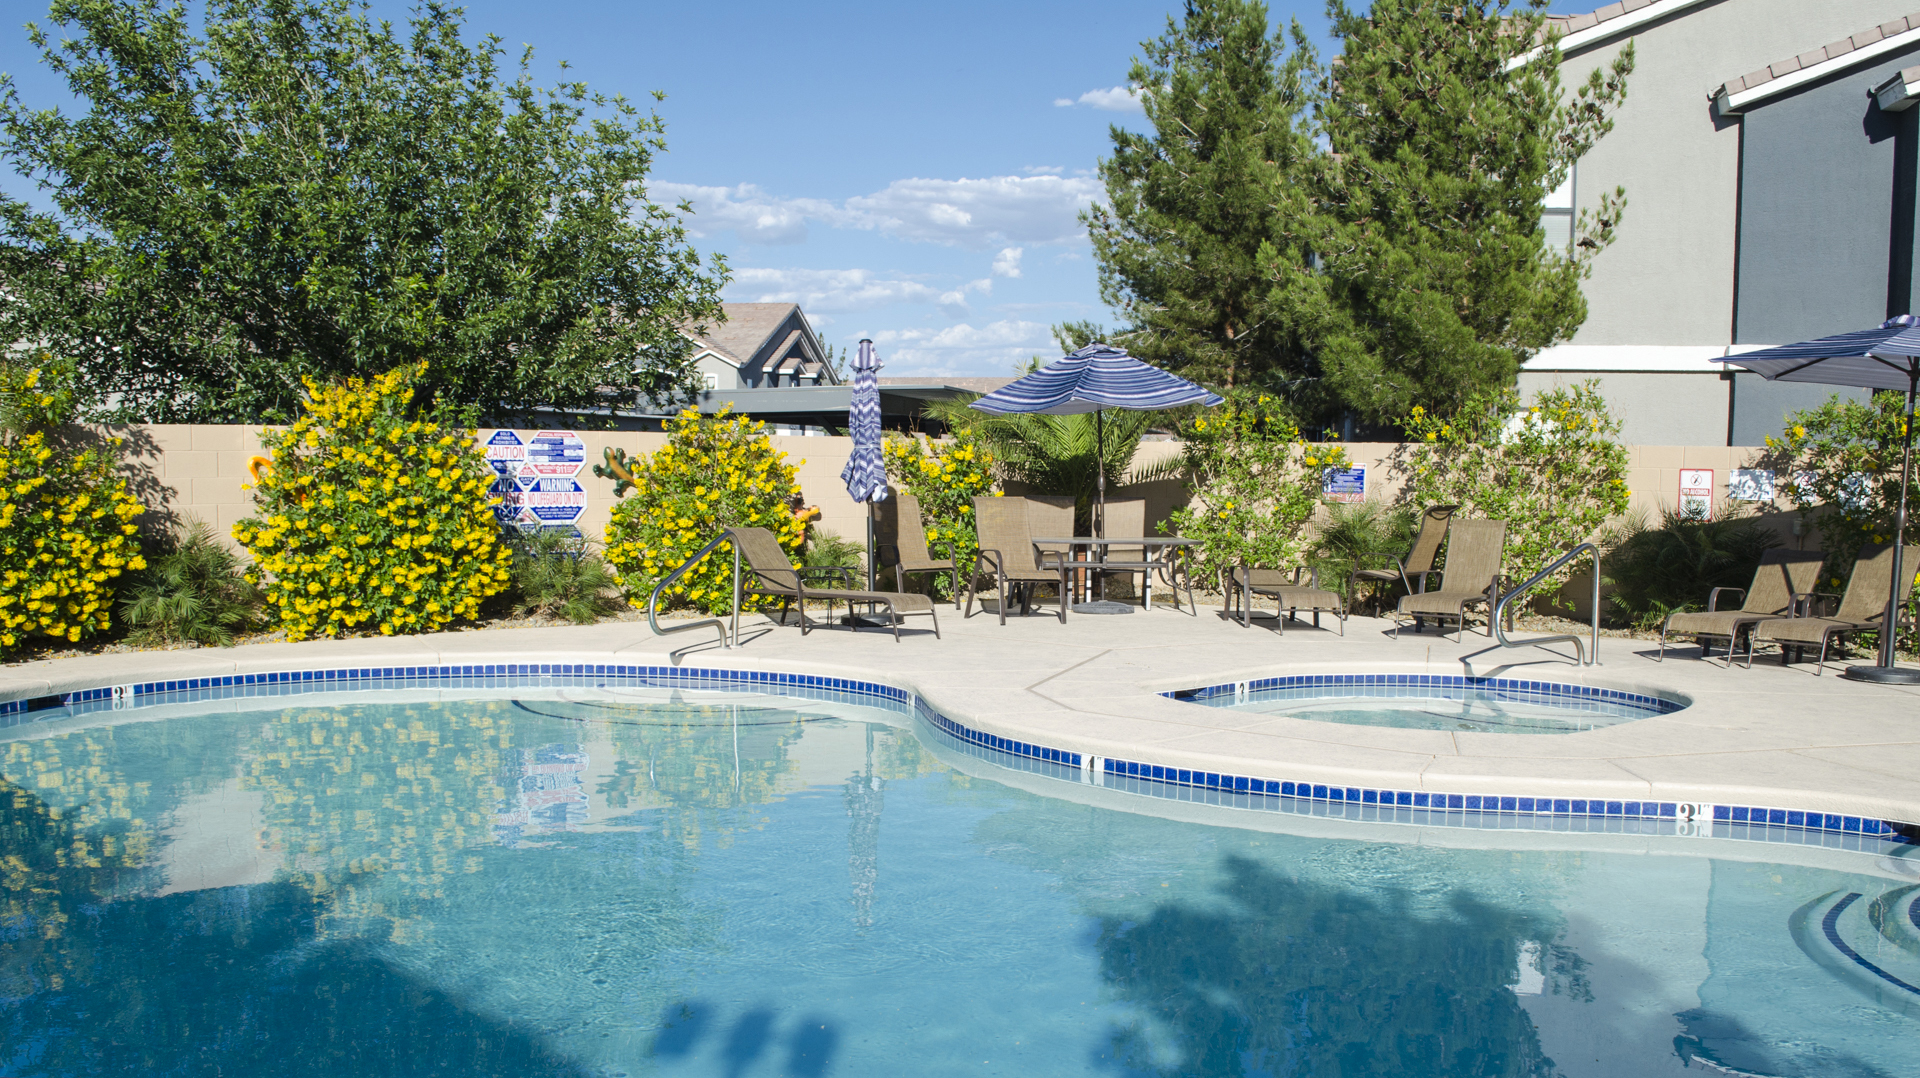 Duck Creek RV Park & Resort Pool Area